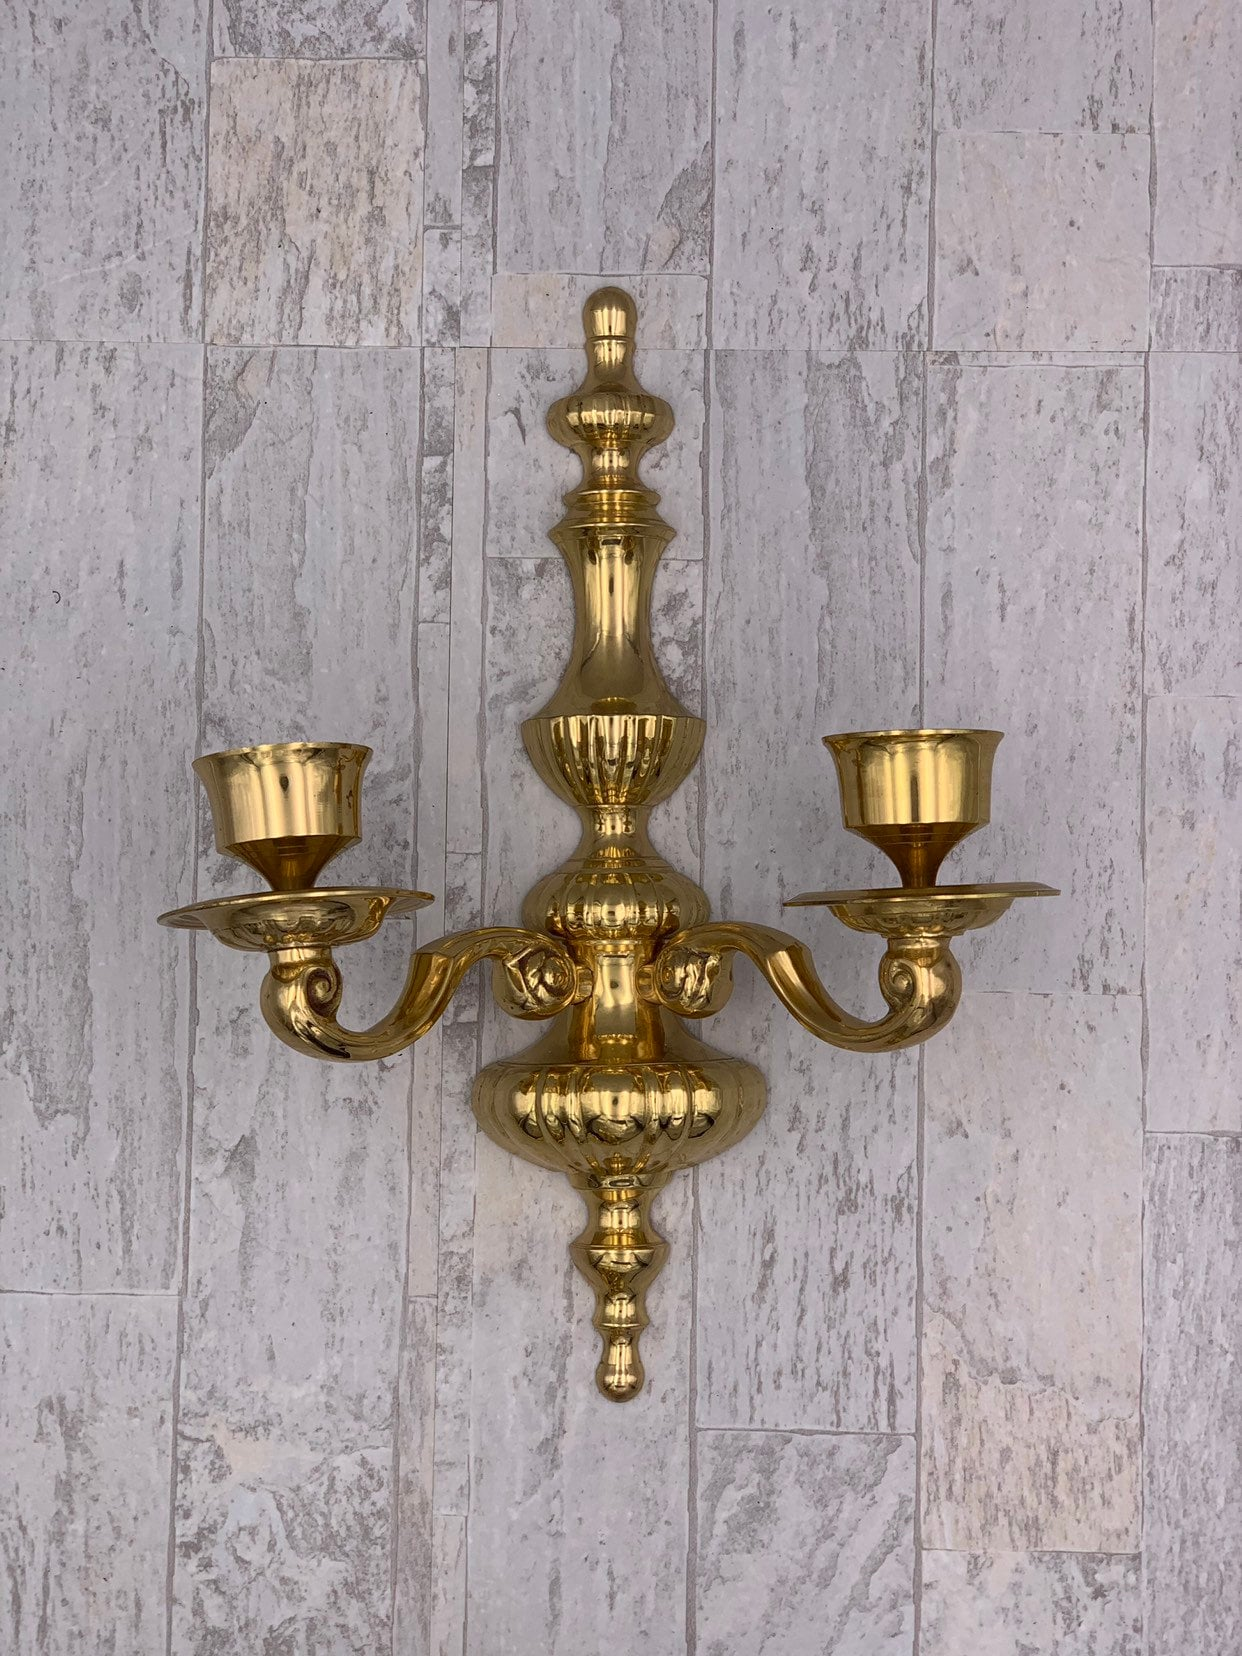 Vintage Brass Wall Sconces, Pair of Double wall candle ... on Large Wall Sconces Candle Holders Decorative id=19268